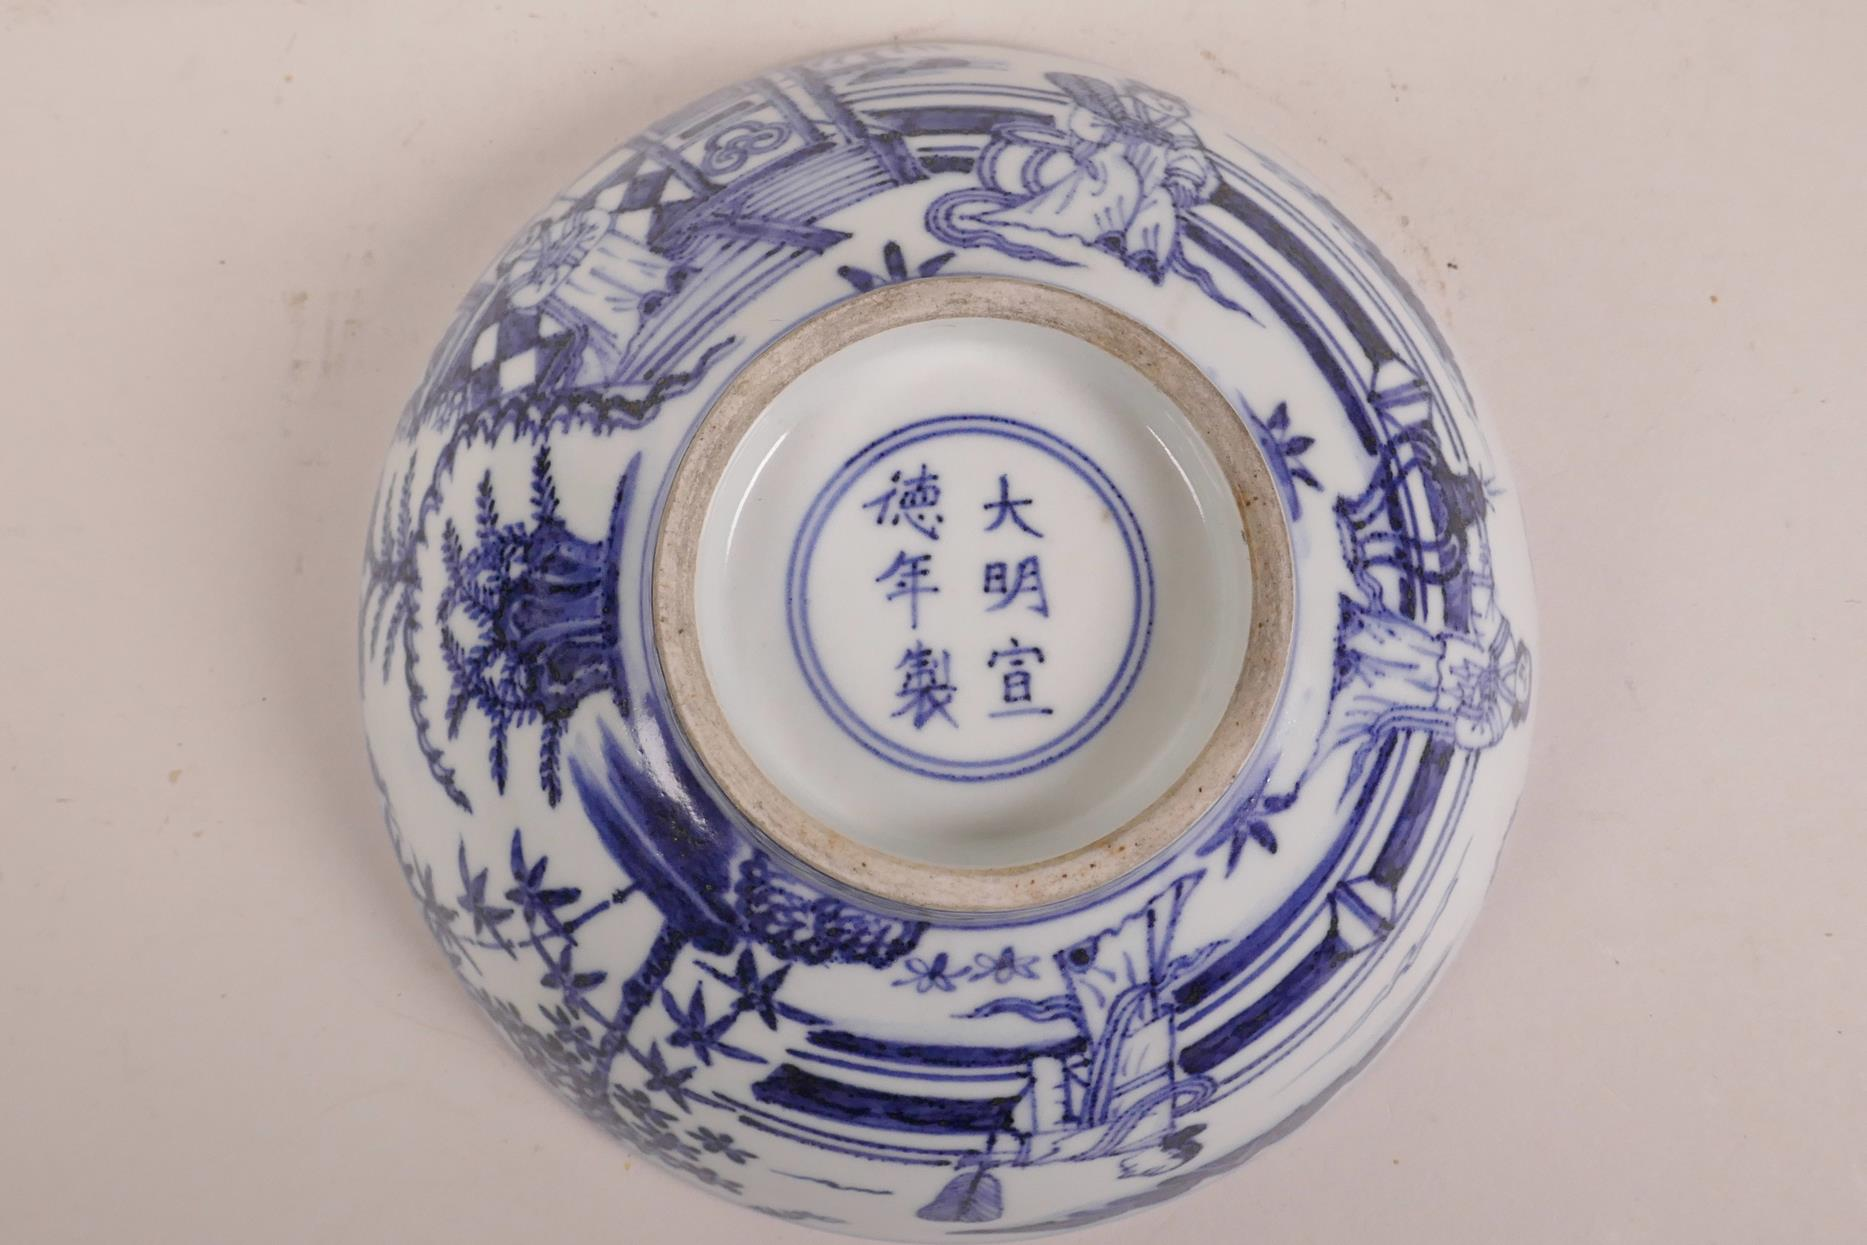 Lot 75 - A Chinese blue and white porcelain bowl decorated with figures in a garden, 6 character mark to